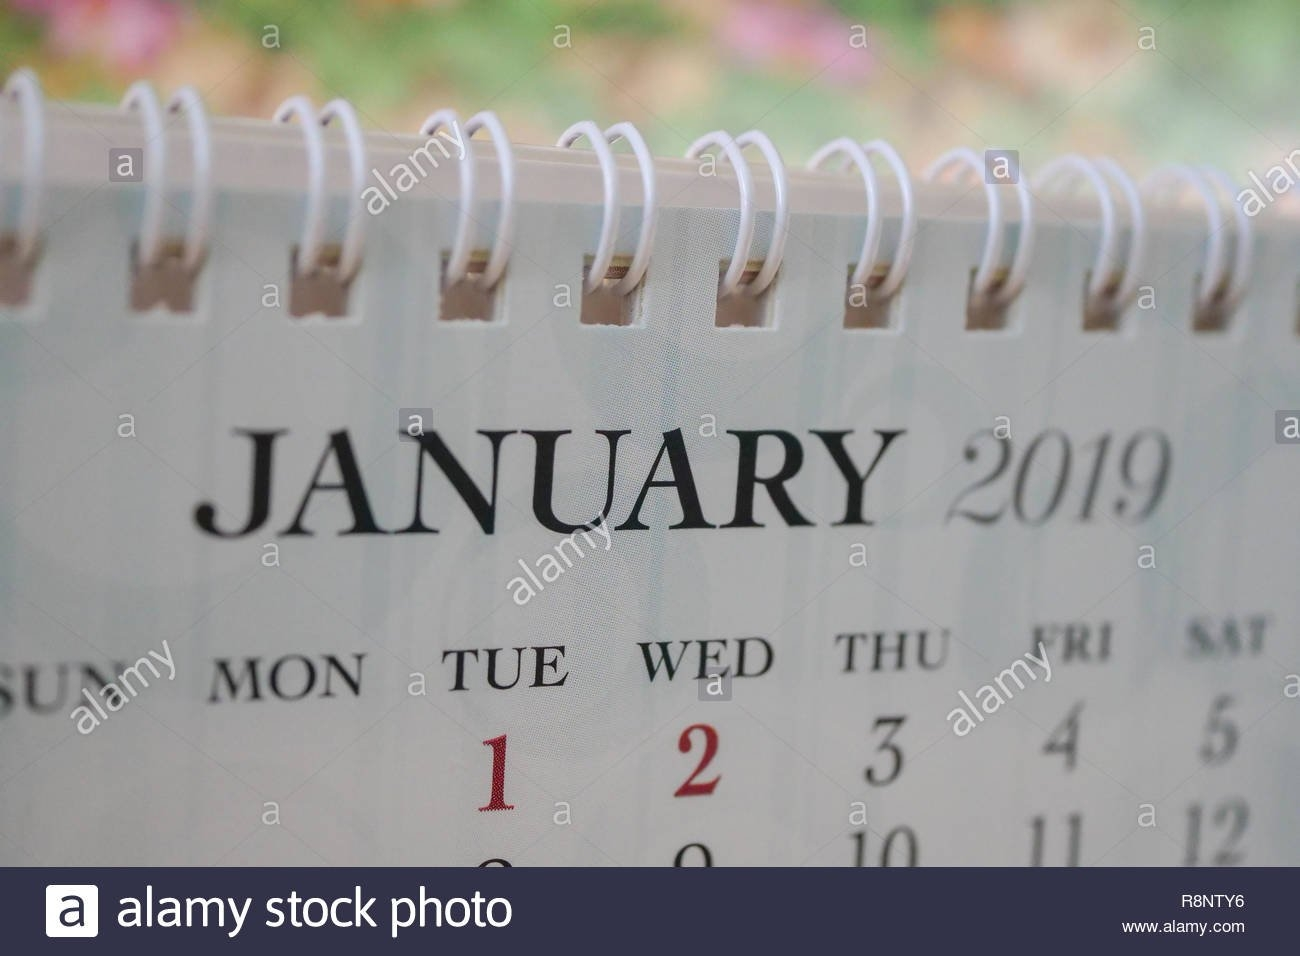 Close Up Calendar Of January 2019 Stock Photo: 229132602 - Alamy Calendar 2019 Bu